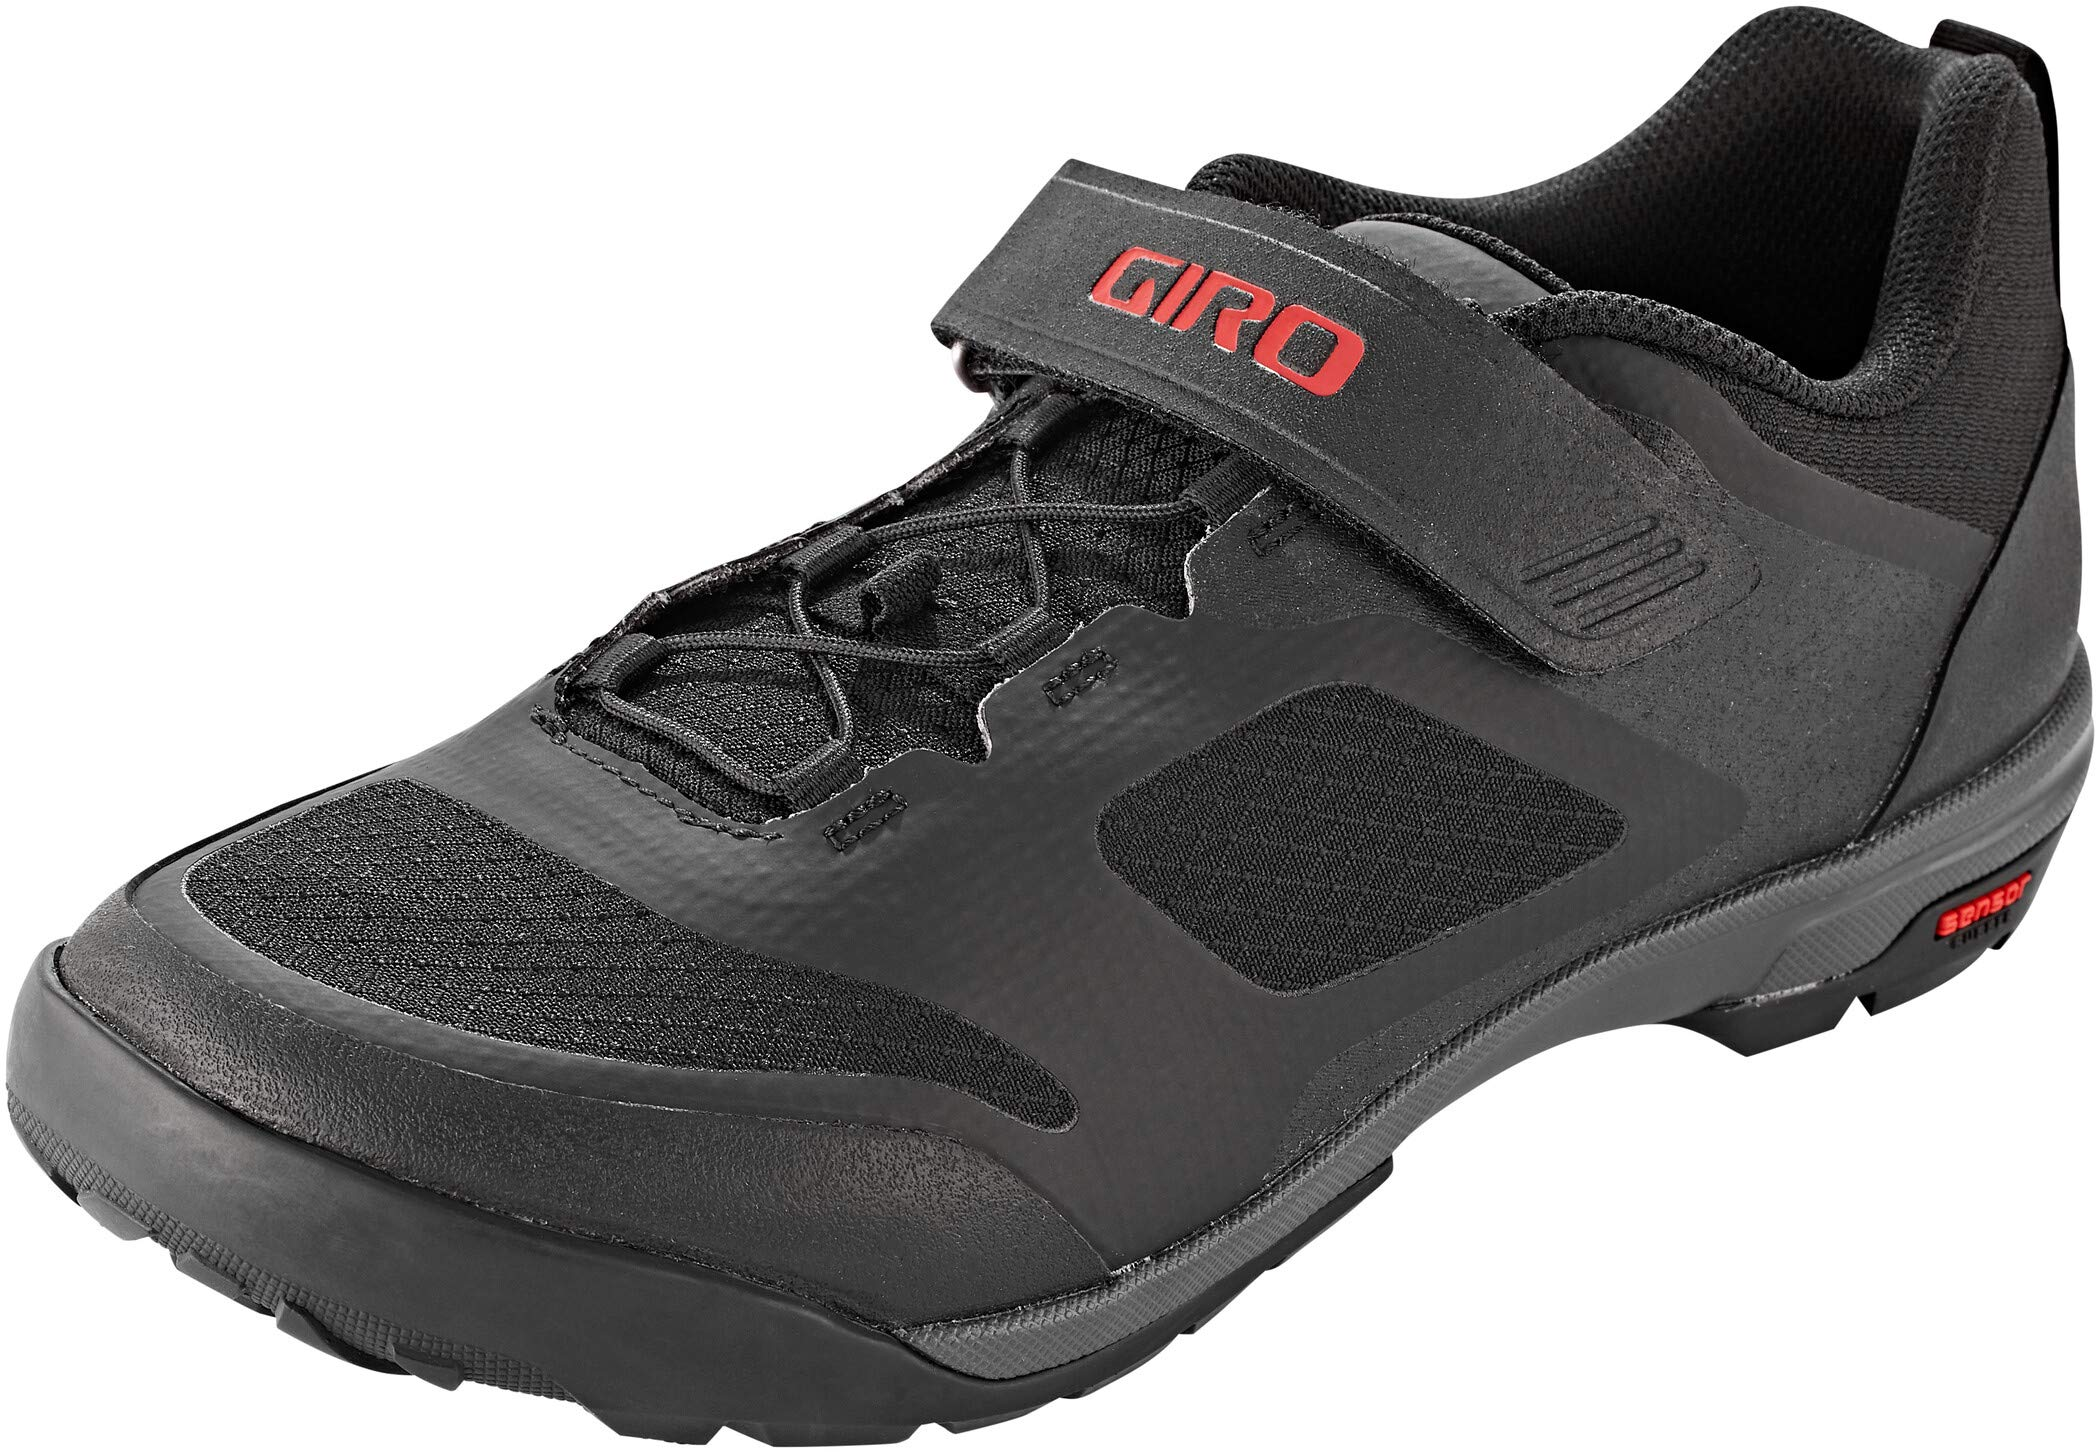 Giro Ventana Fastlace Men's Mountain Cycling Shoes